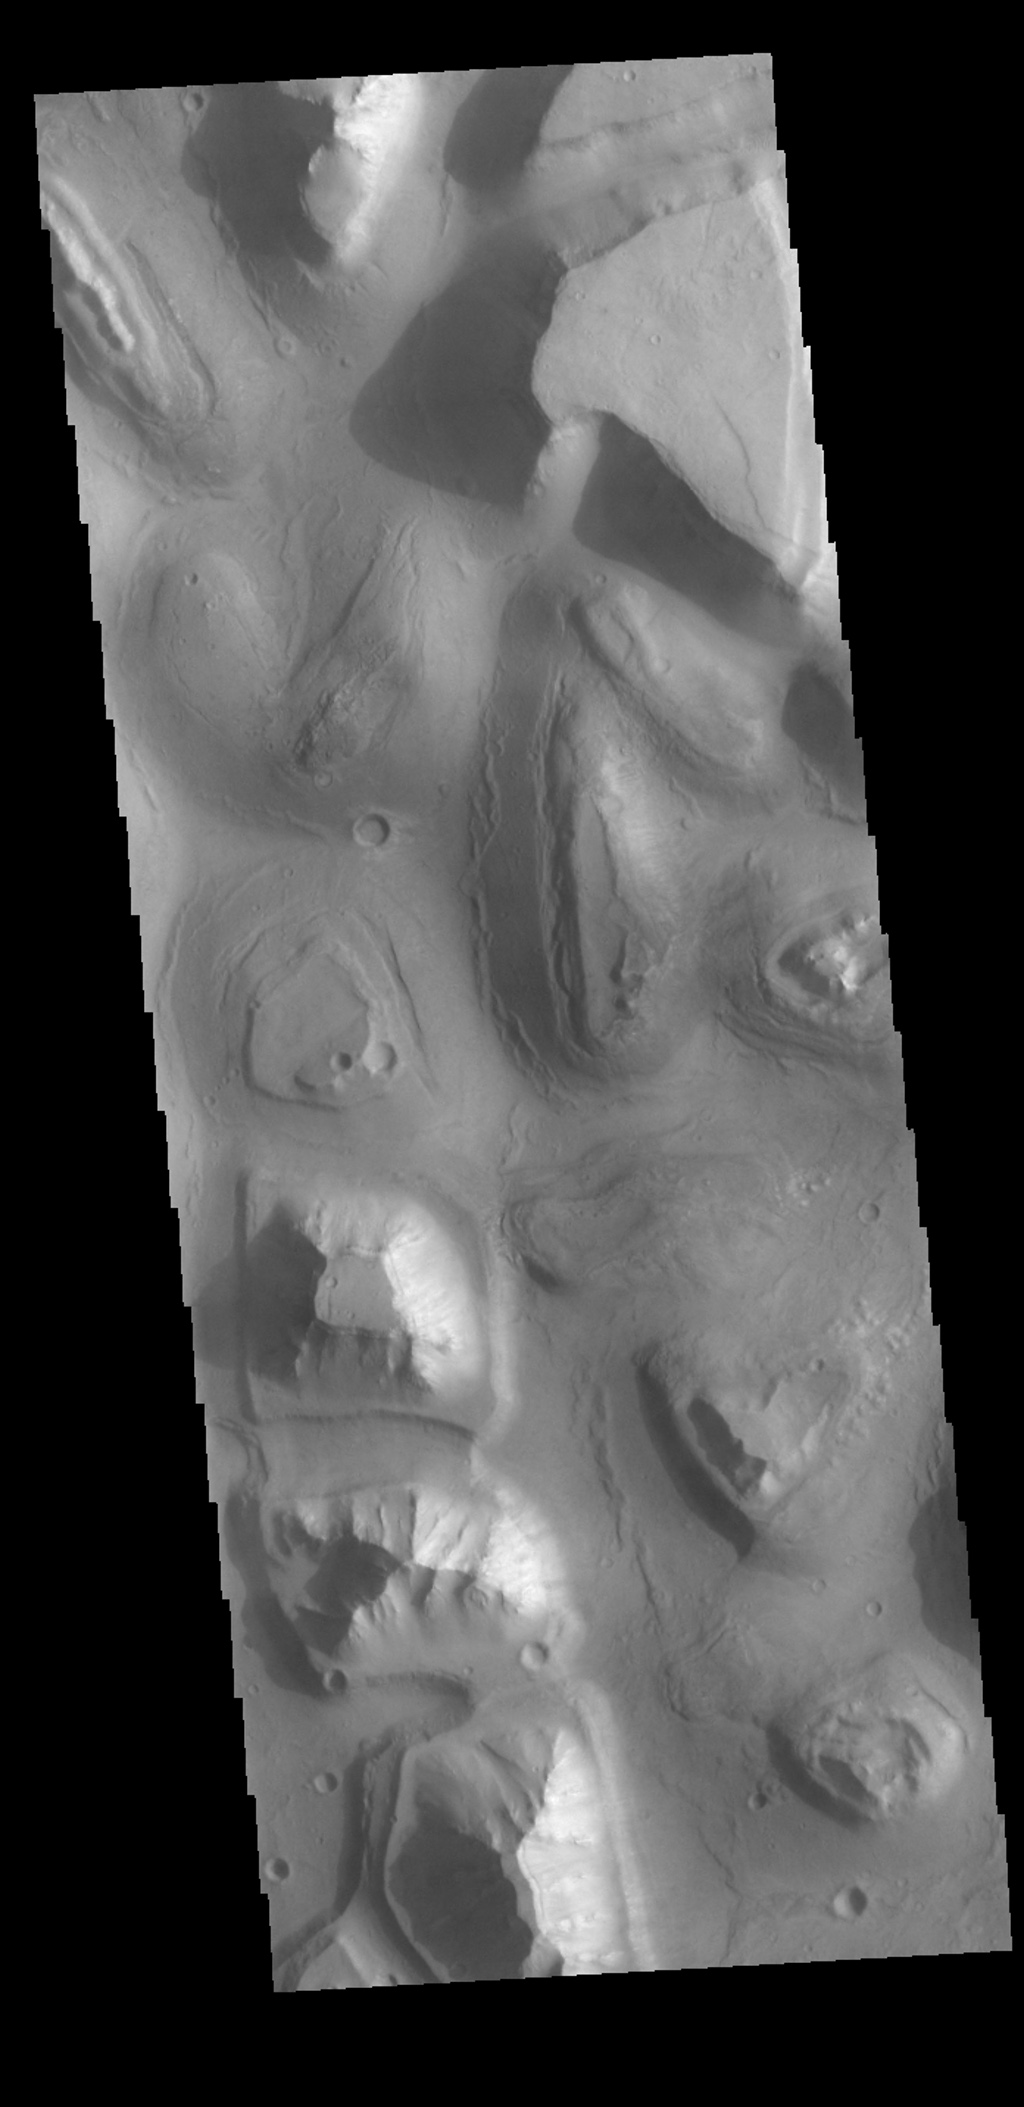 This image captured by NASA's 2001 Mars Odyssey spacecraft shows a small portion of Hydraotes Chaos. Chaos is defined as a distinctive area of broken terrain.